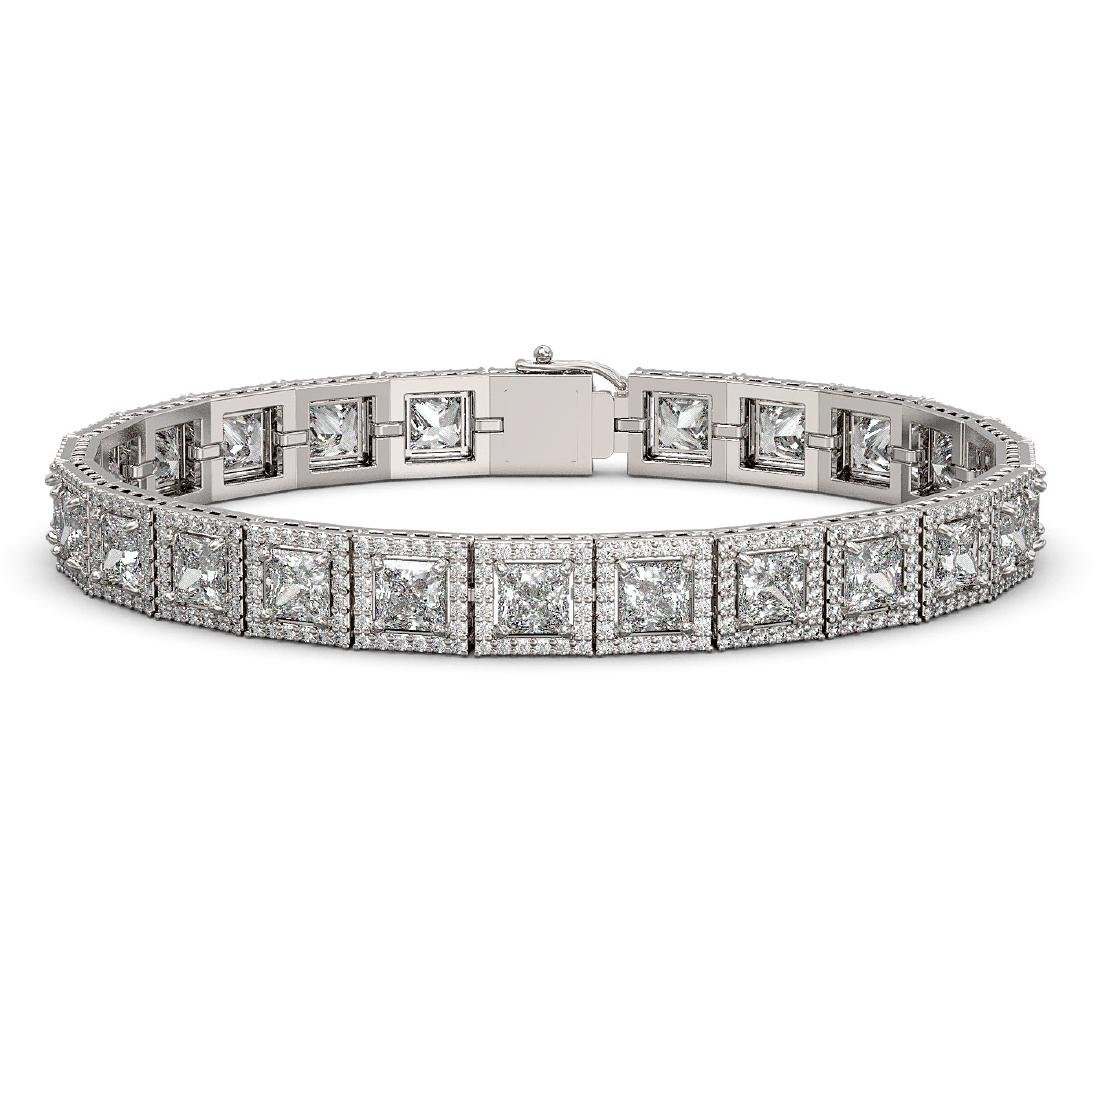 18.24 CTW Princess Diamond Designer Bracelet 18K White